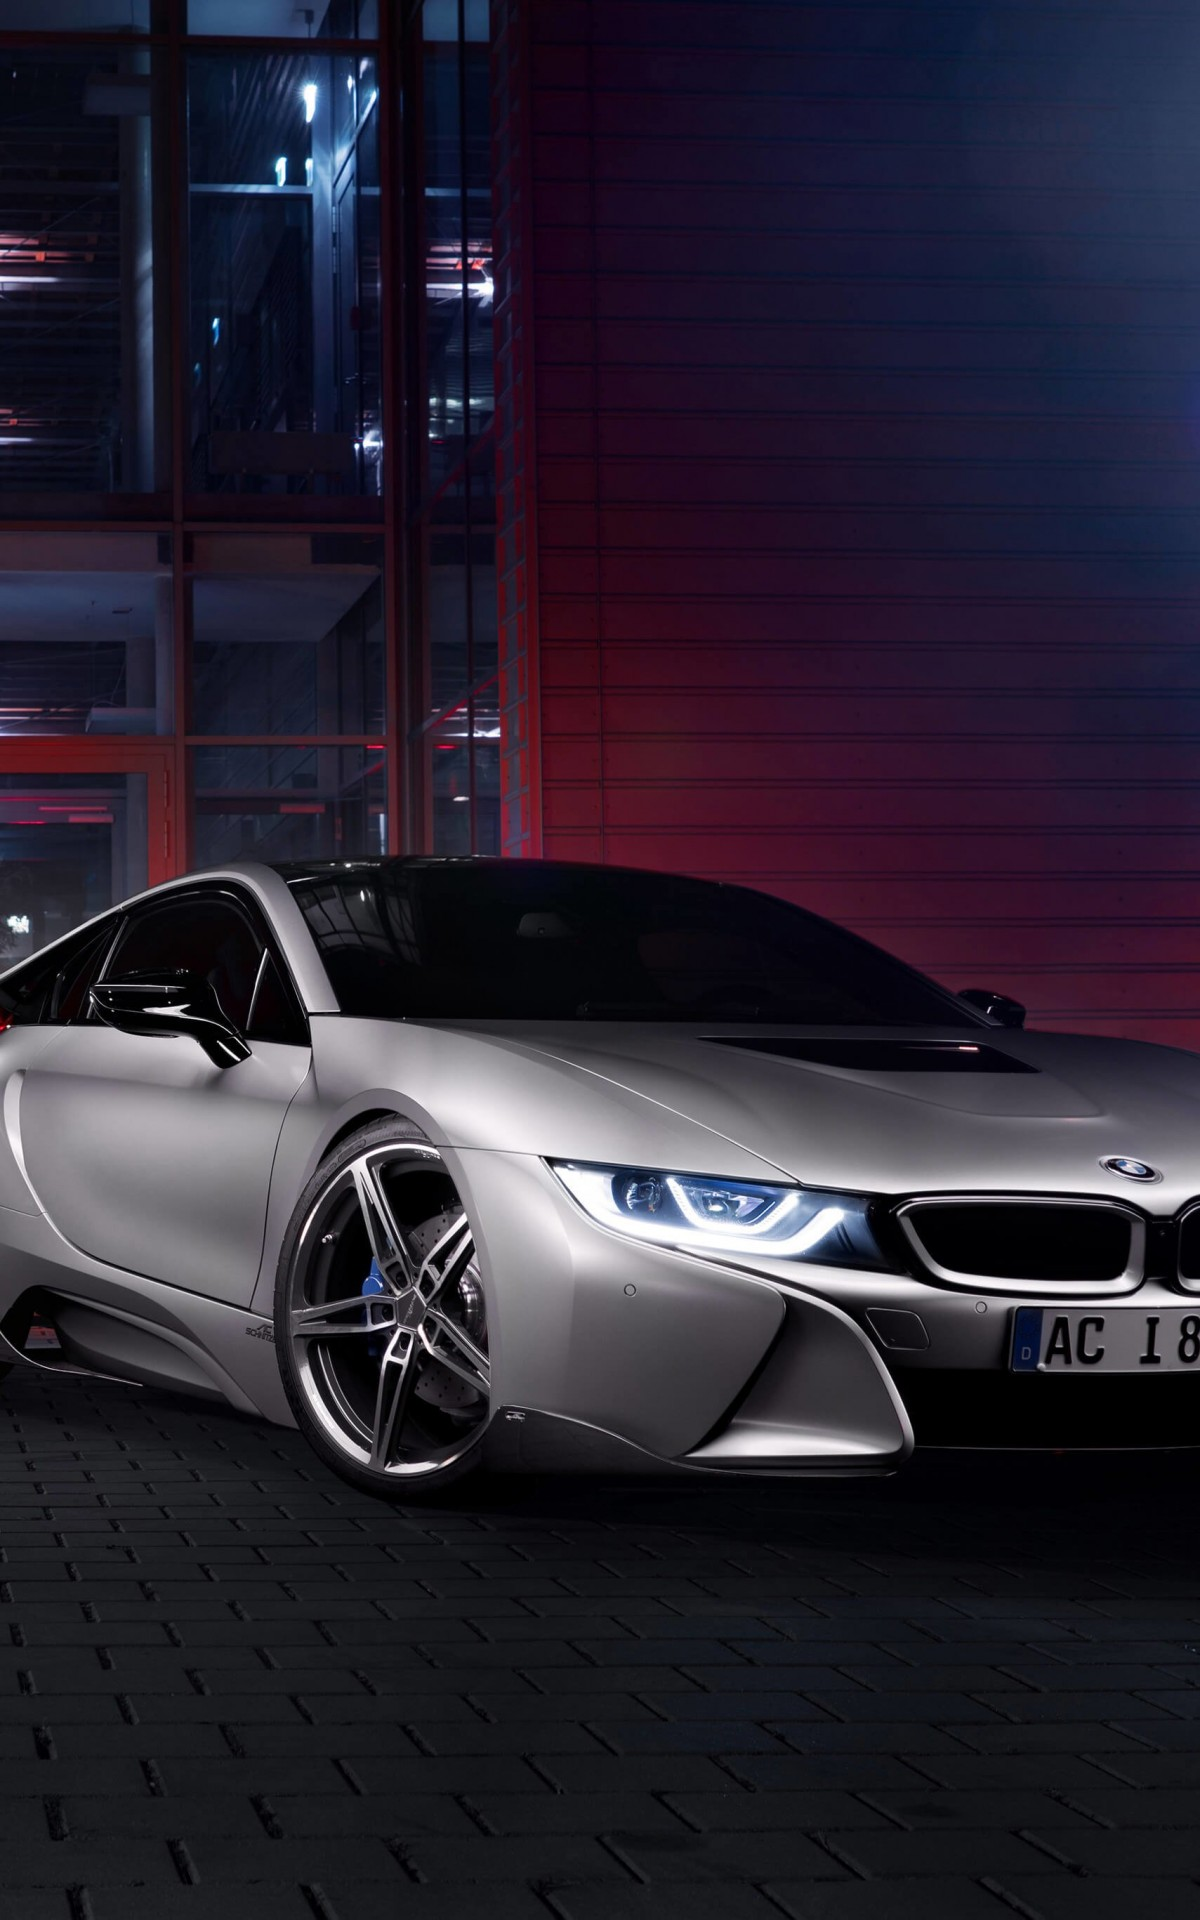 BMW i8 designed by AC Schnitzer Wallpaper for Amazon Kindle Fire HDX